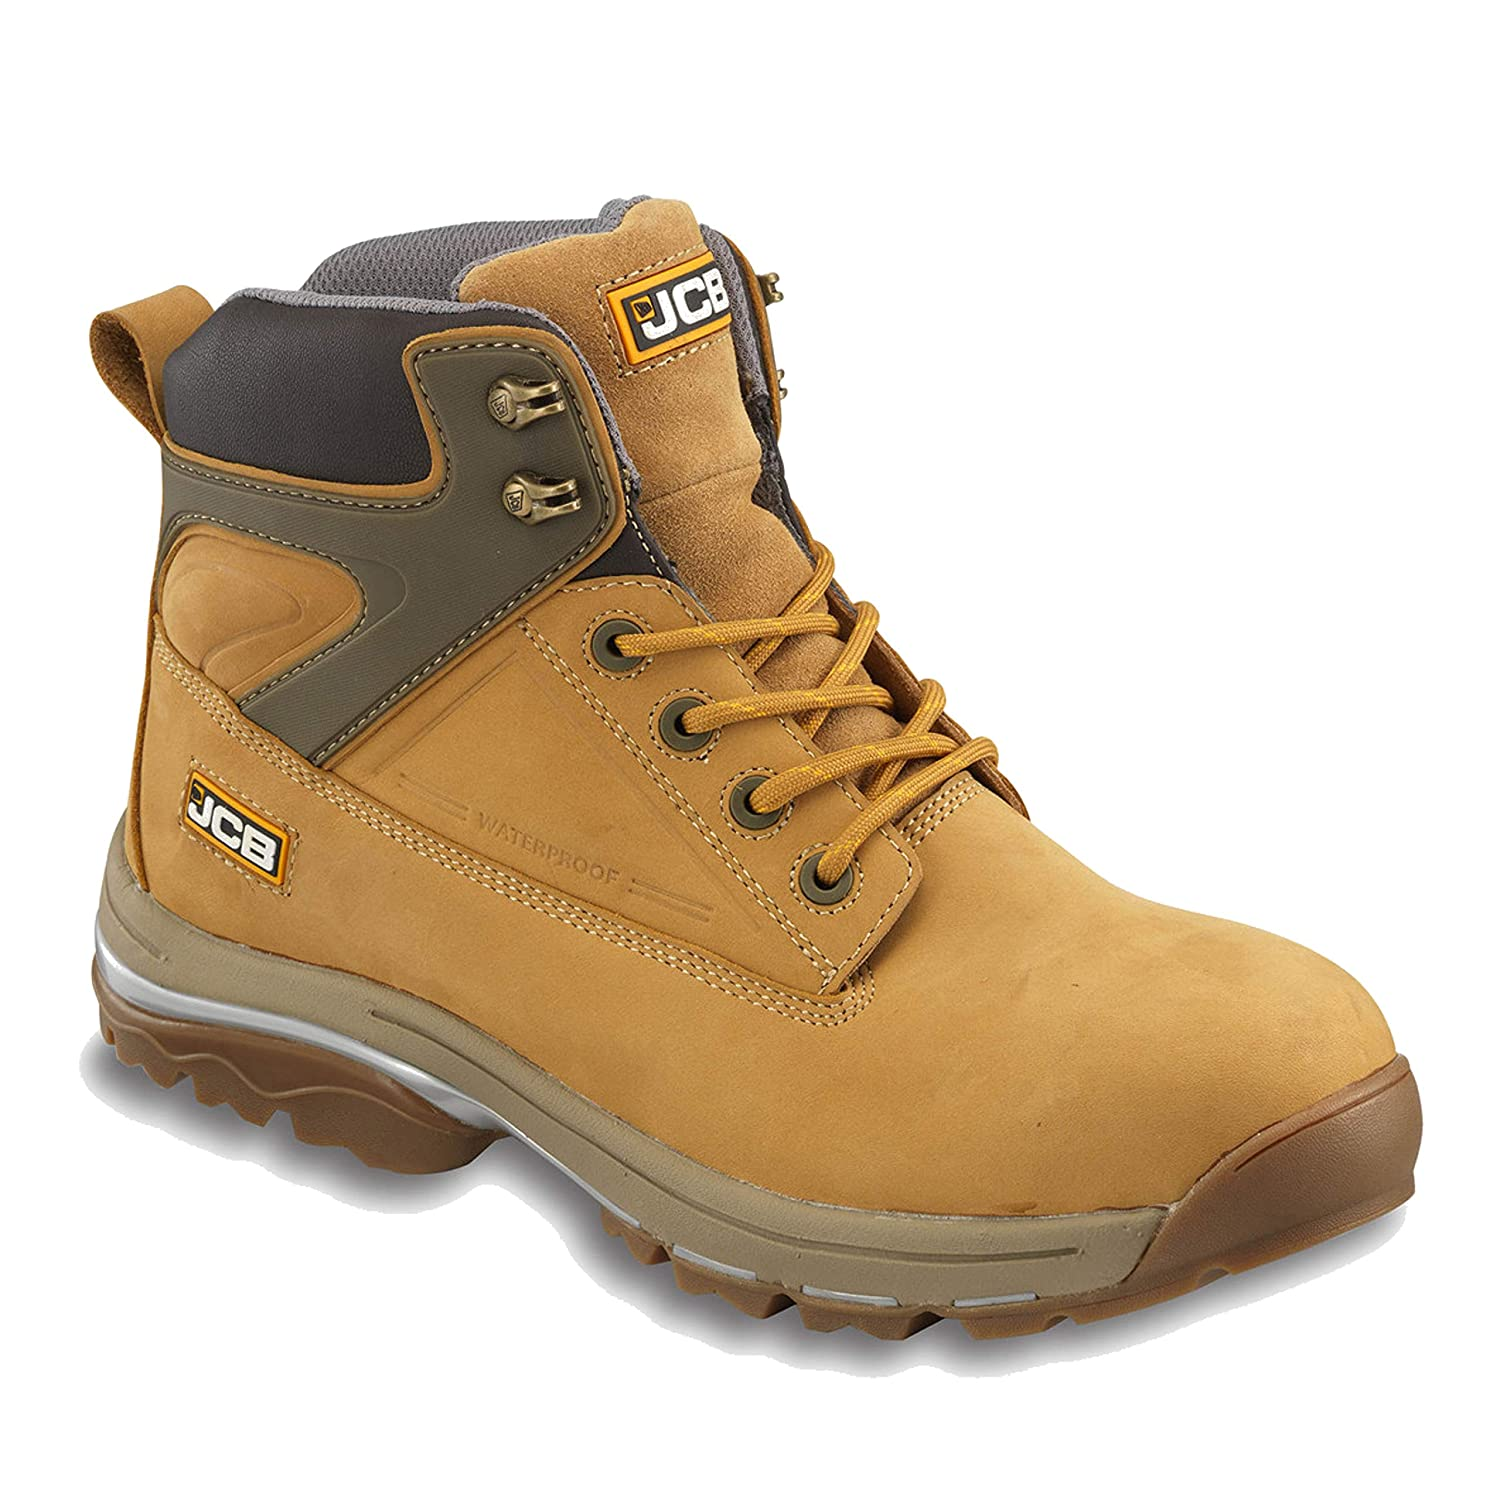 c291f84273b Amazon.com: Jcb Mens Fast Track Waterproof Leather Steel Toe Boots ...